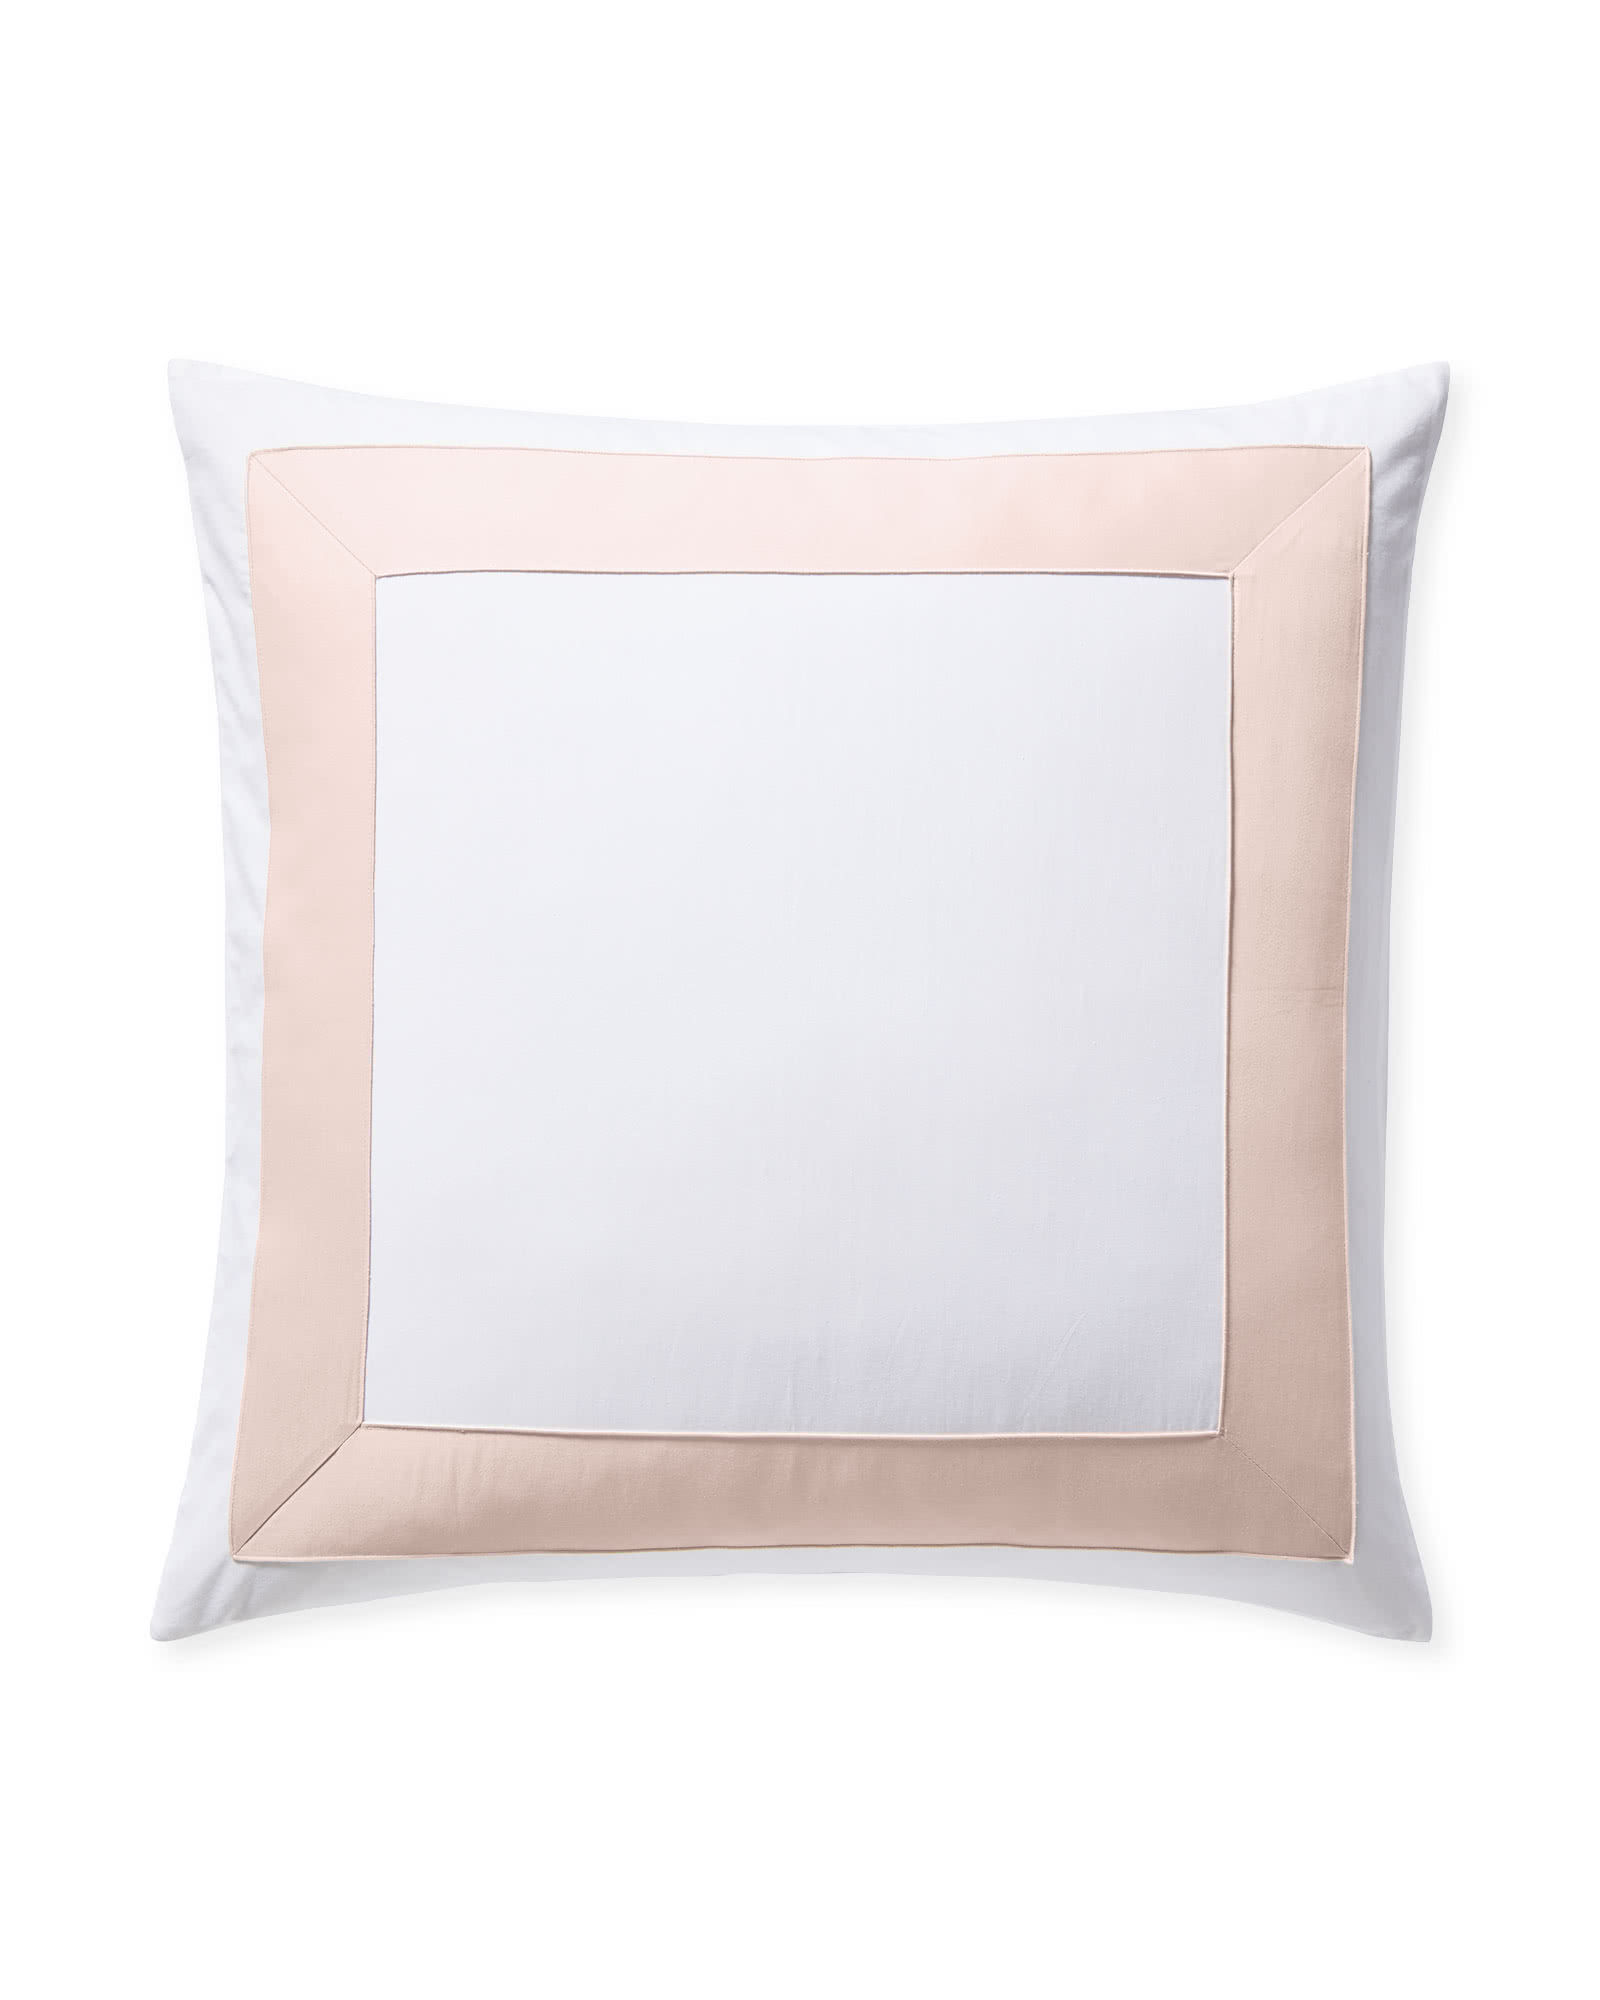 Beach Club Border Shams - Pink Sand,